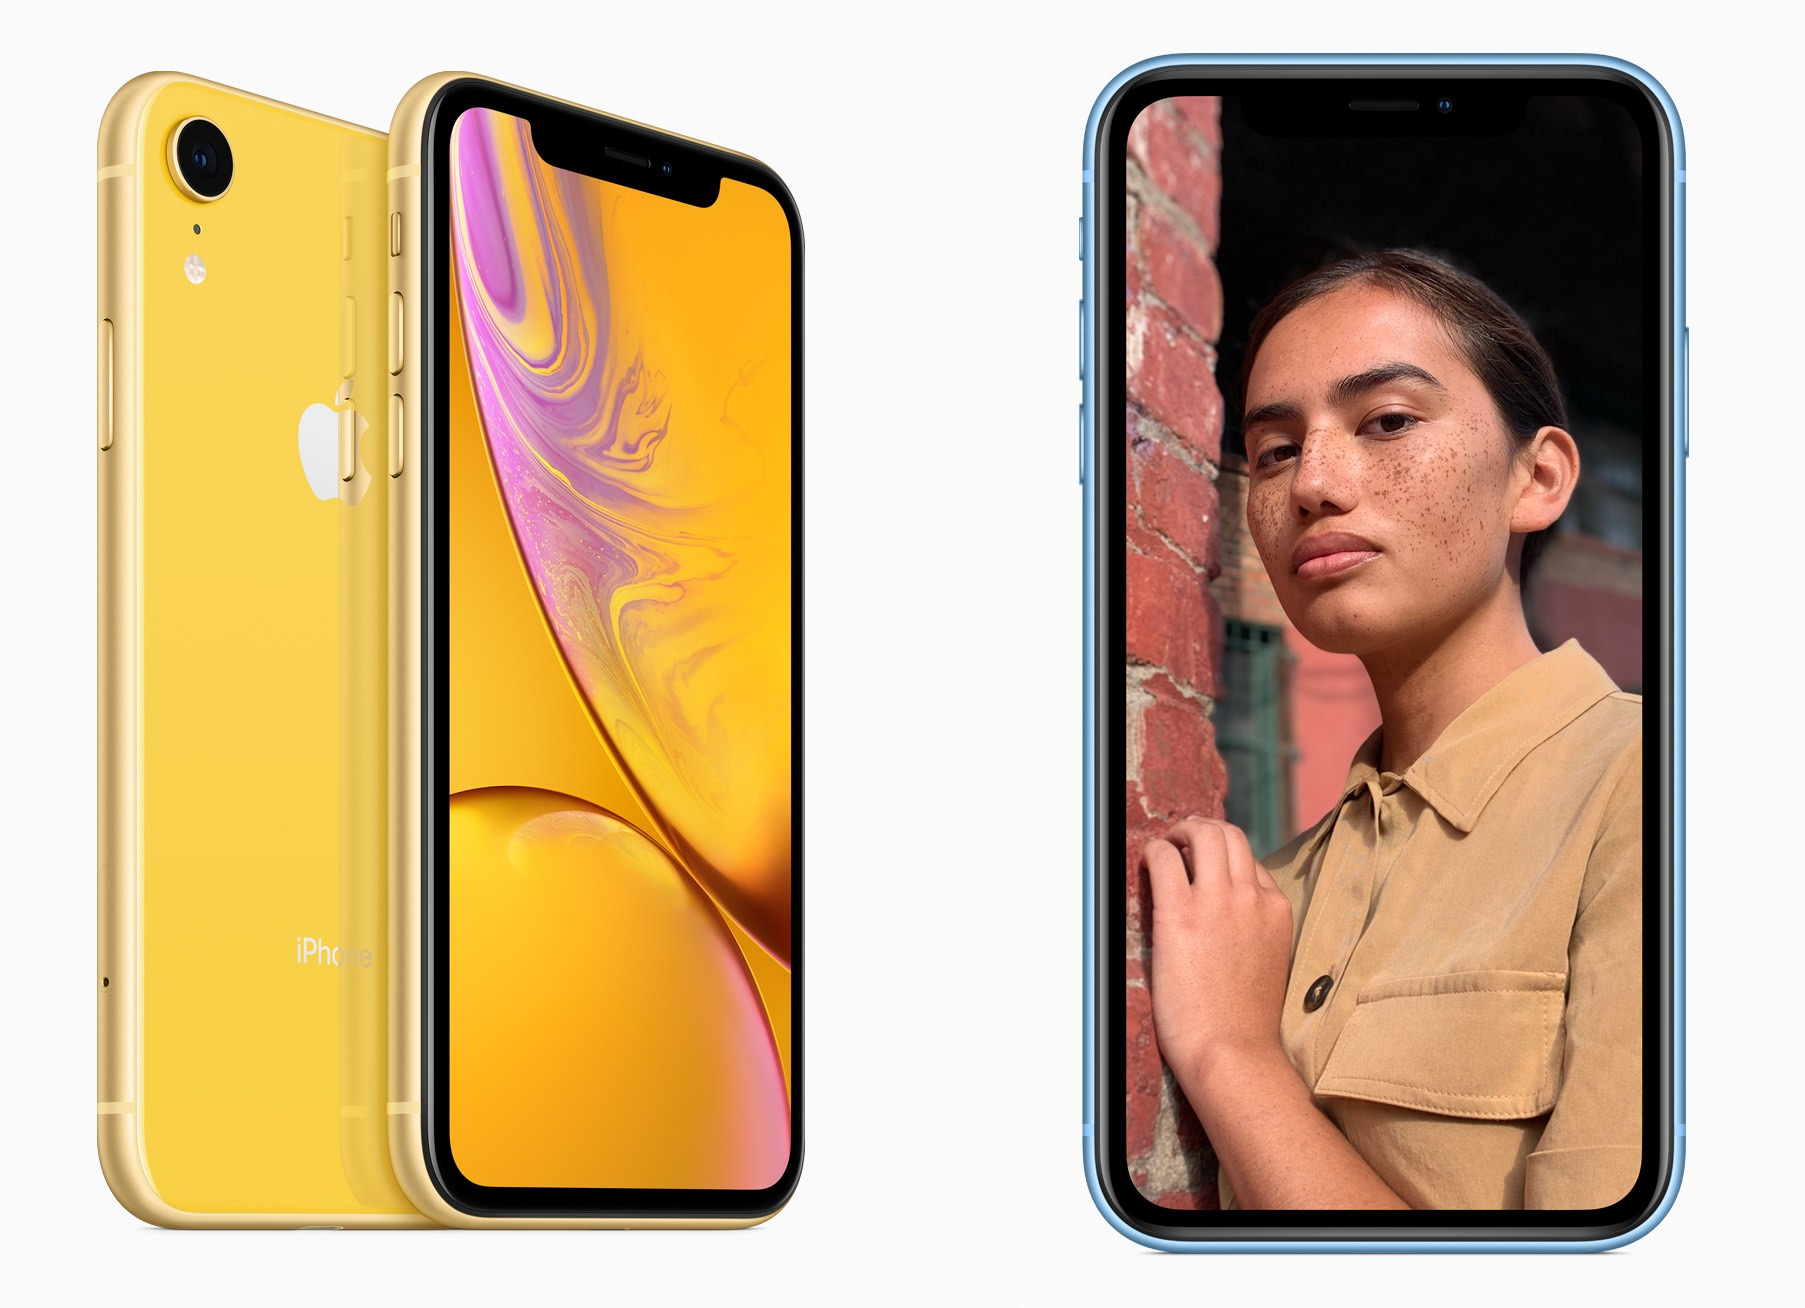 Apple iPhone XR A Closer First Look PHOTOS  Boing Boing